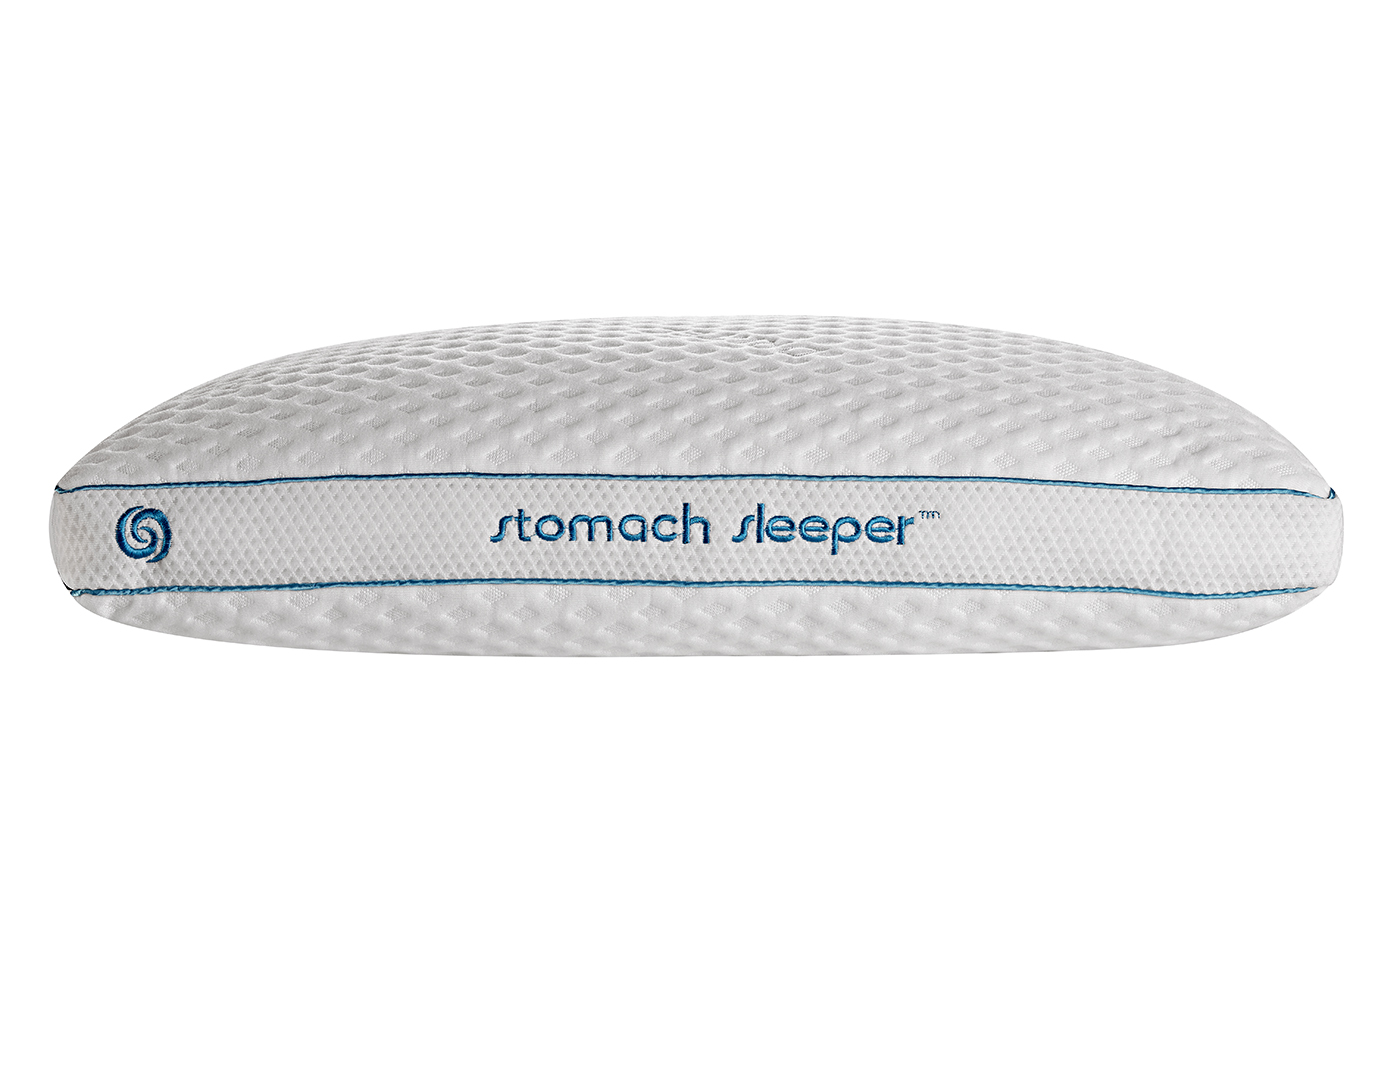 bedgear Position Queen Stomach Sleeper Pillow